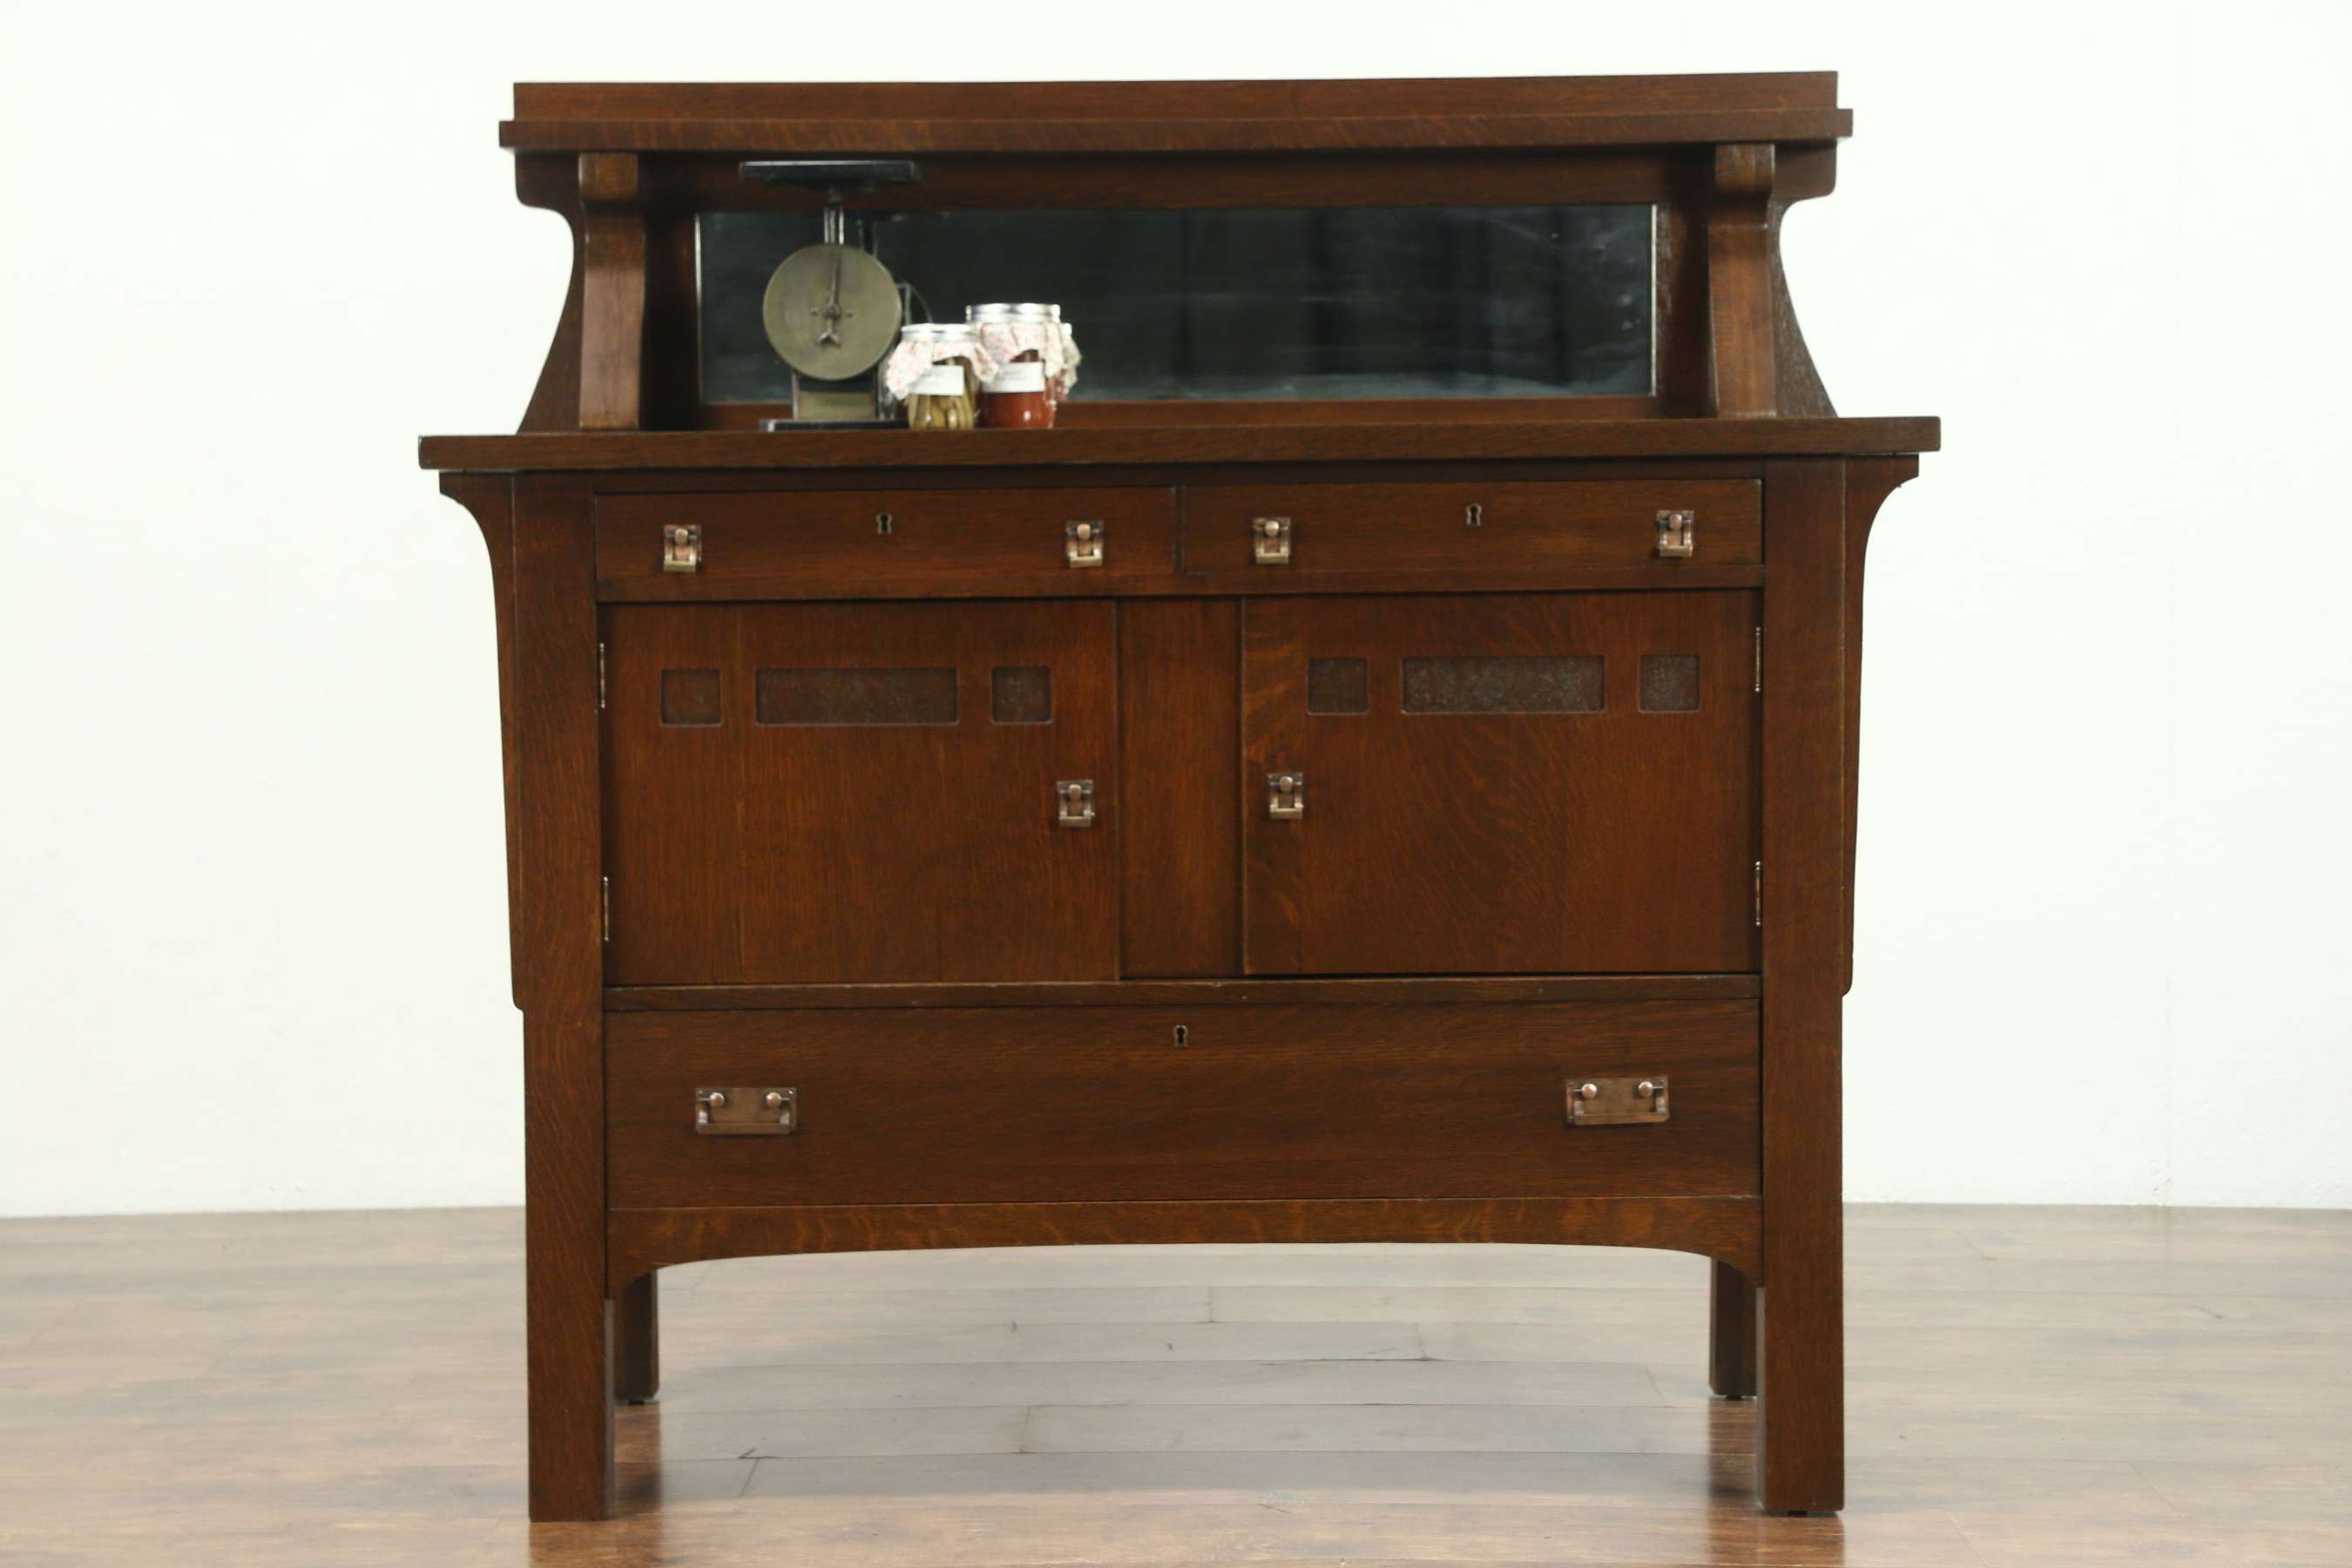 Arts & Crafts Mission Oak Antique Sideboard Server Or Craftsman Pertaining To Mission Sideboards (View 4 of 20)